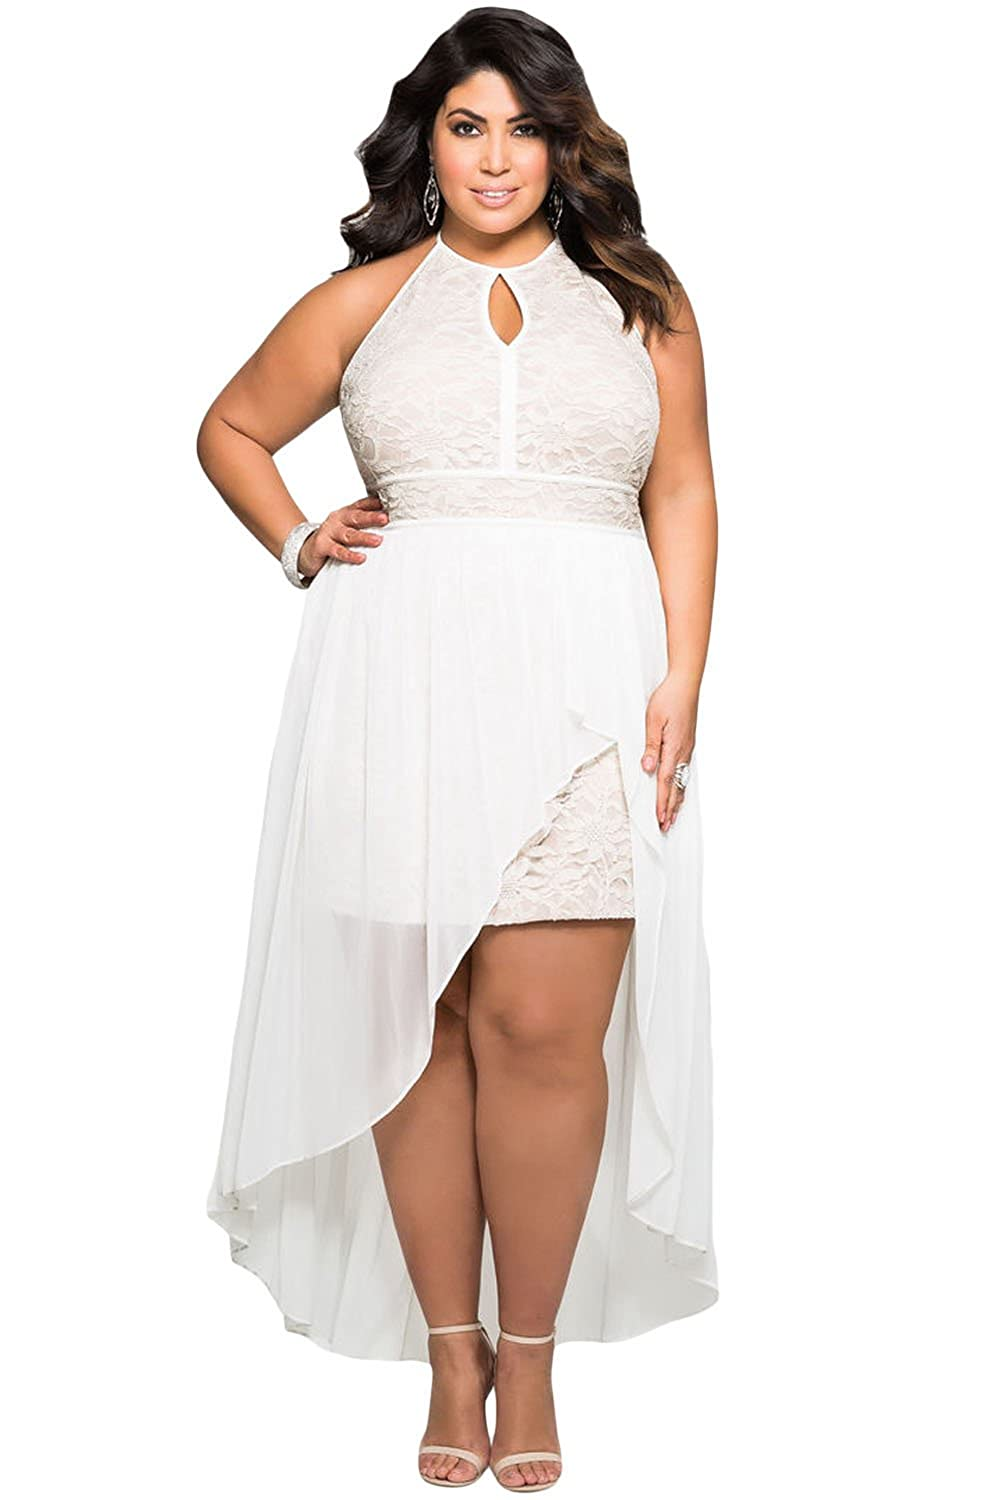 Womens New White Halterneck Stylish Lace Special Occasion Plus Size Club Party Dress